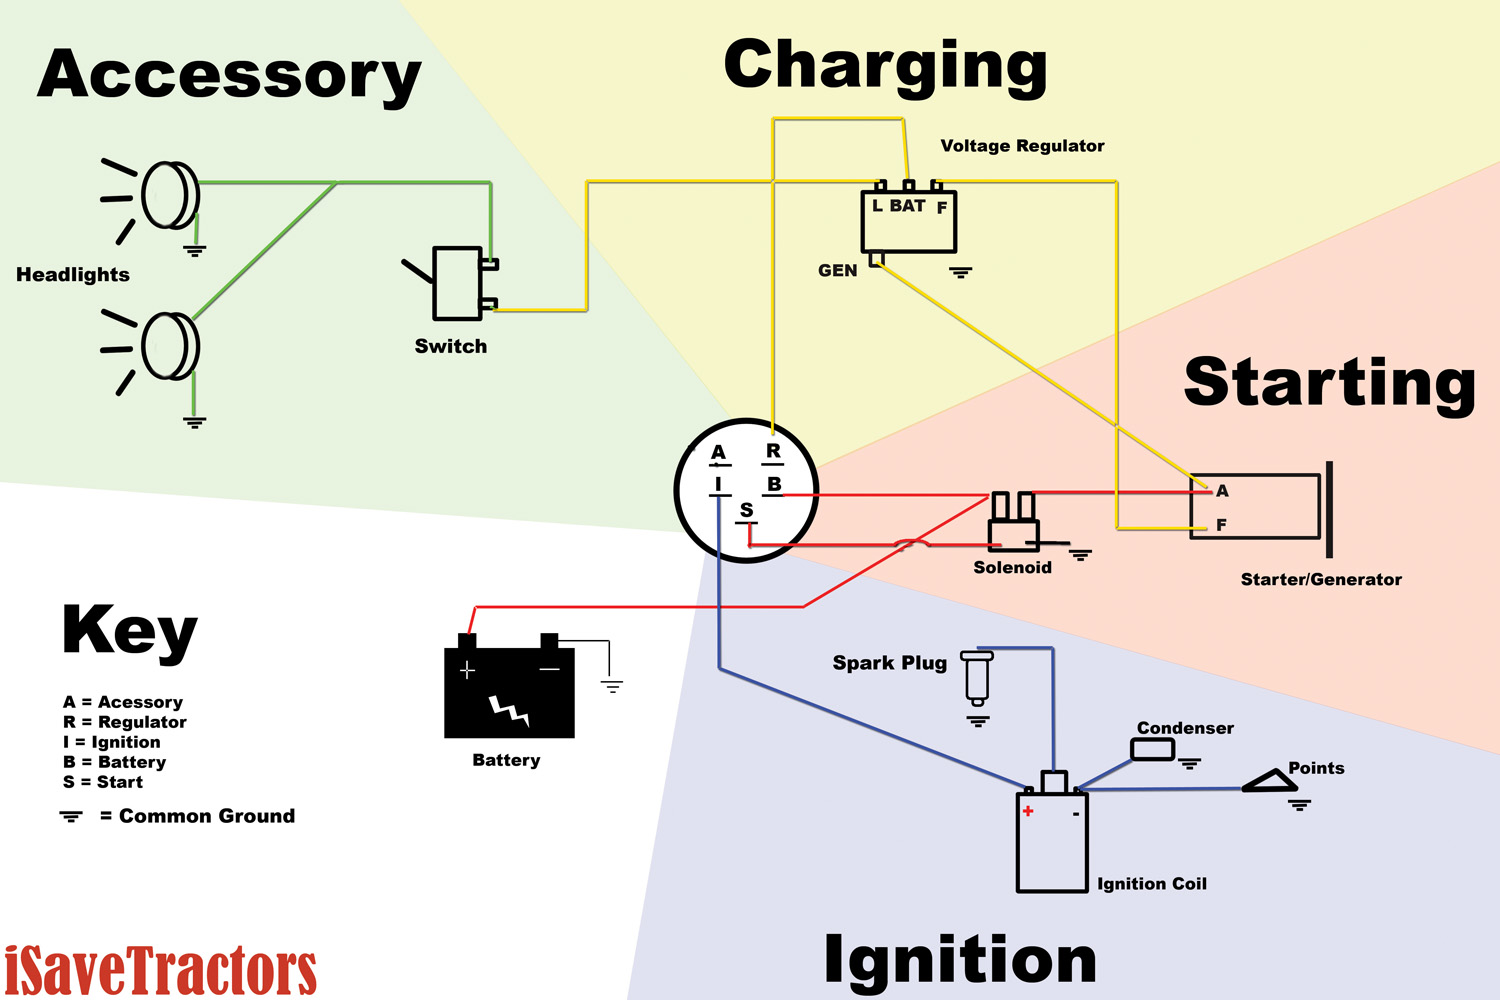 Delco Series Parallel Switch Wiring Diagram: Delco remy alternator wiring  diagram 22sirh:svlc.